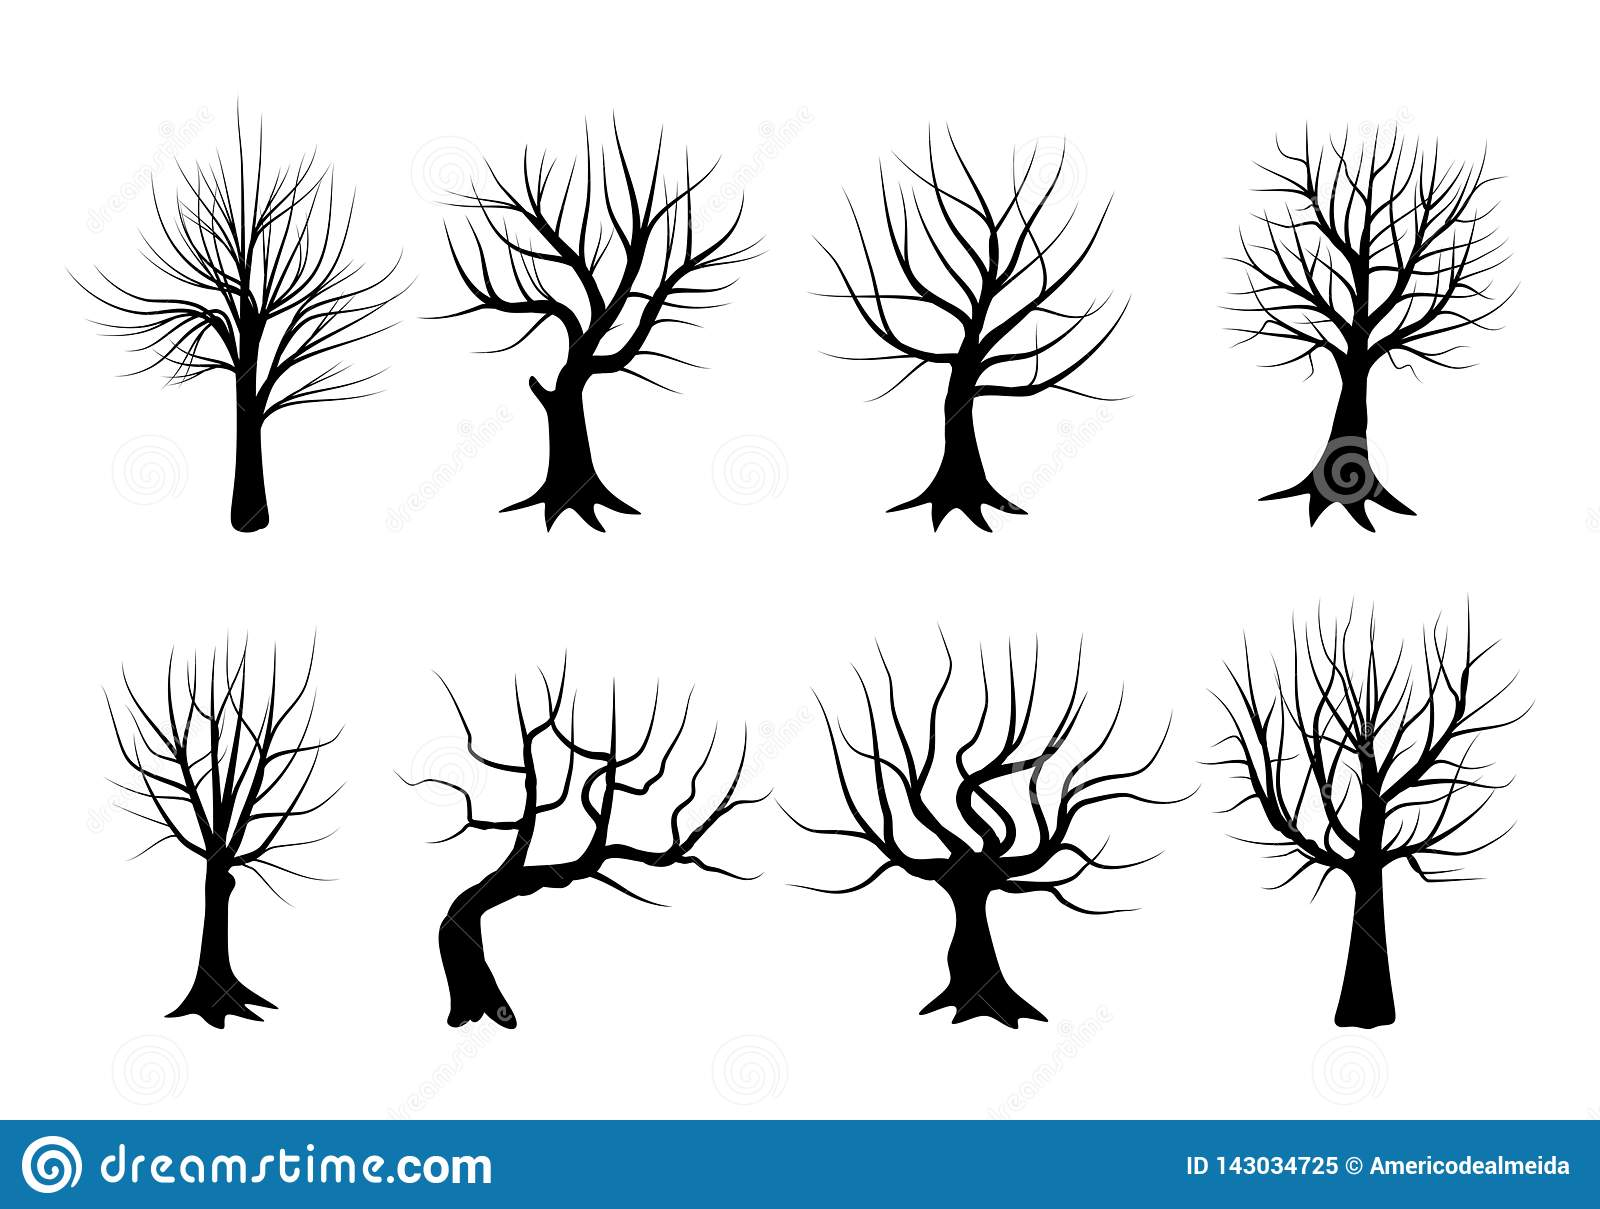 Set of silhouettes of trees in winter, stripped of their leaves. Vector illustration.